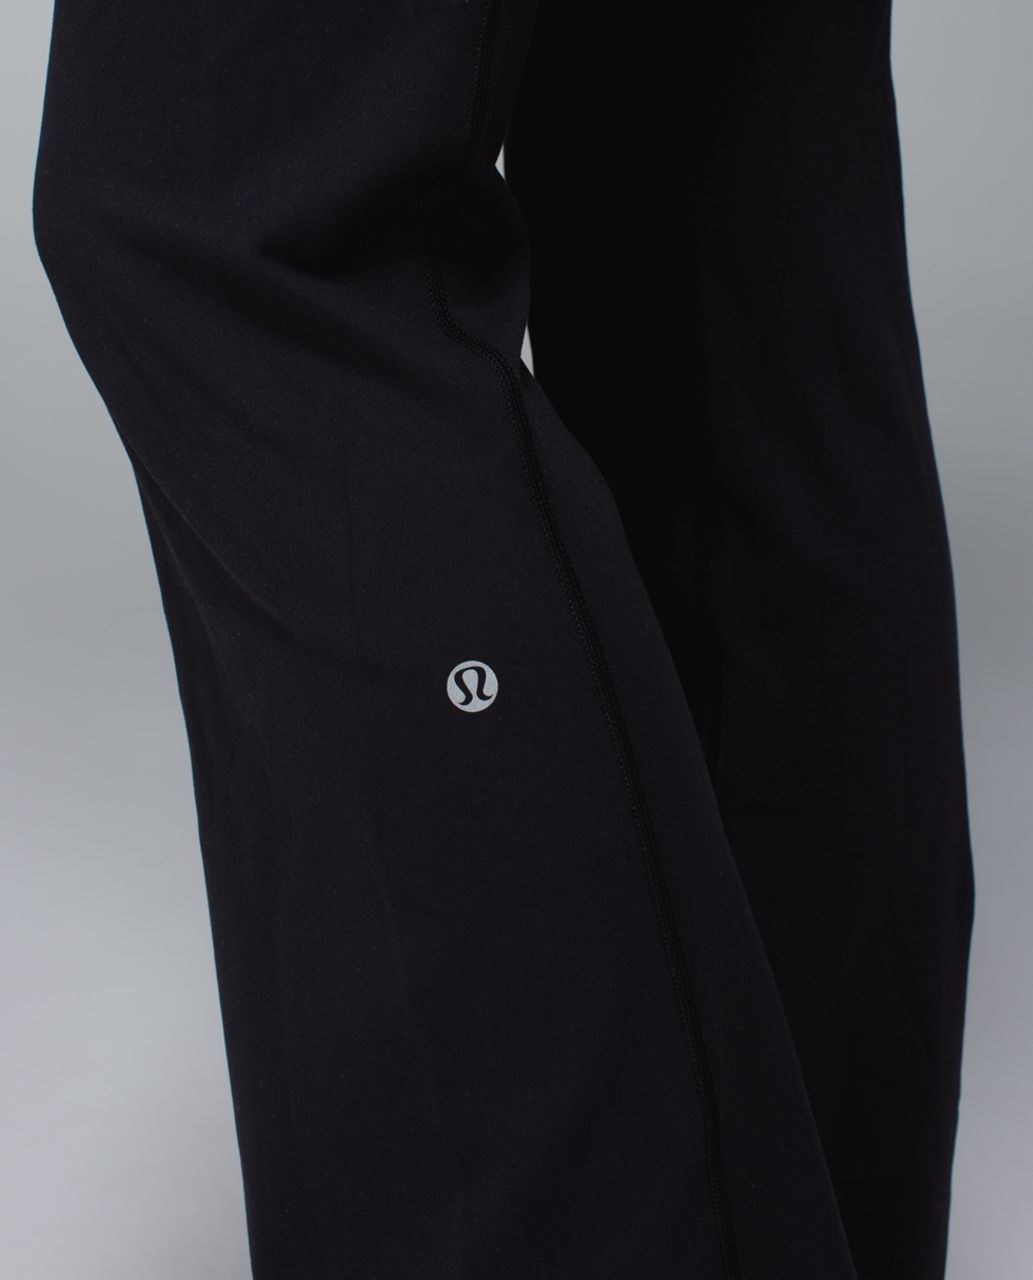 Lululemon Groove Pant (Regular) *Full-On Luon - Black / Quilt Spring 14-07